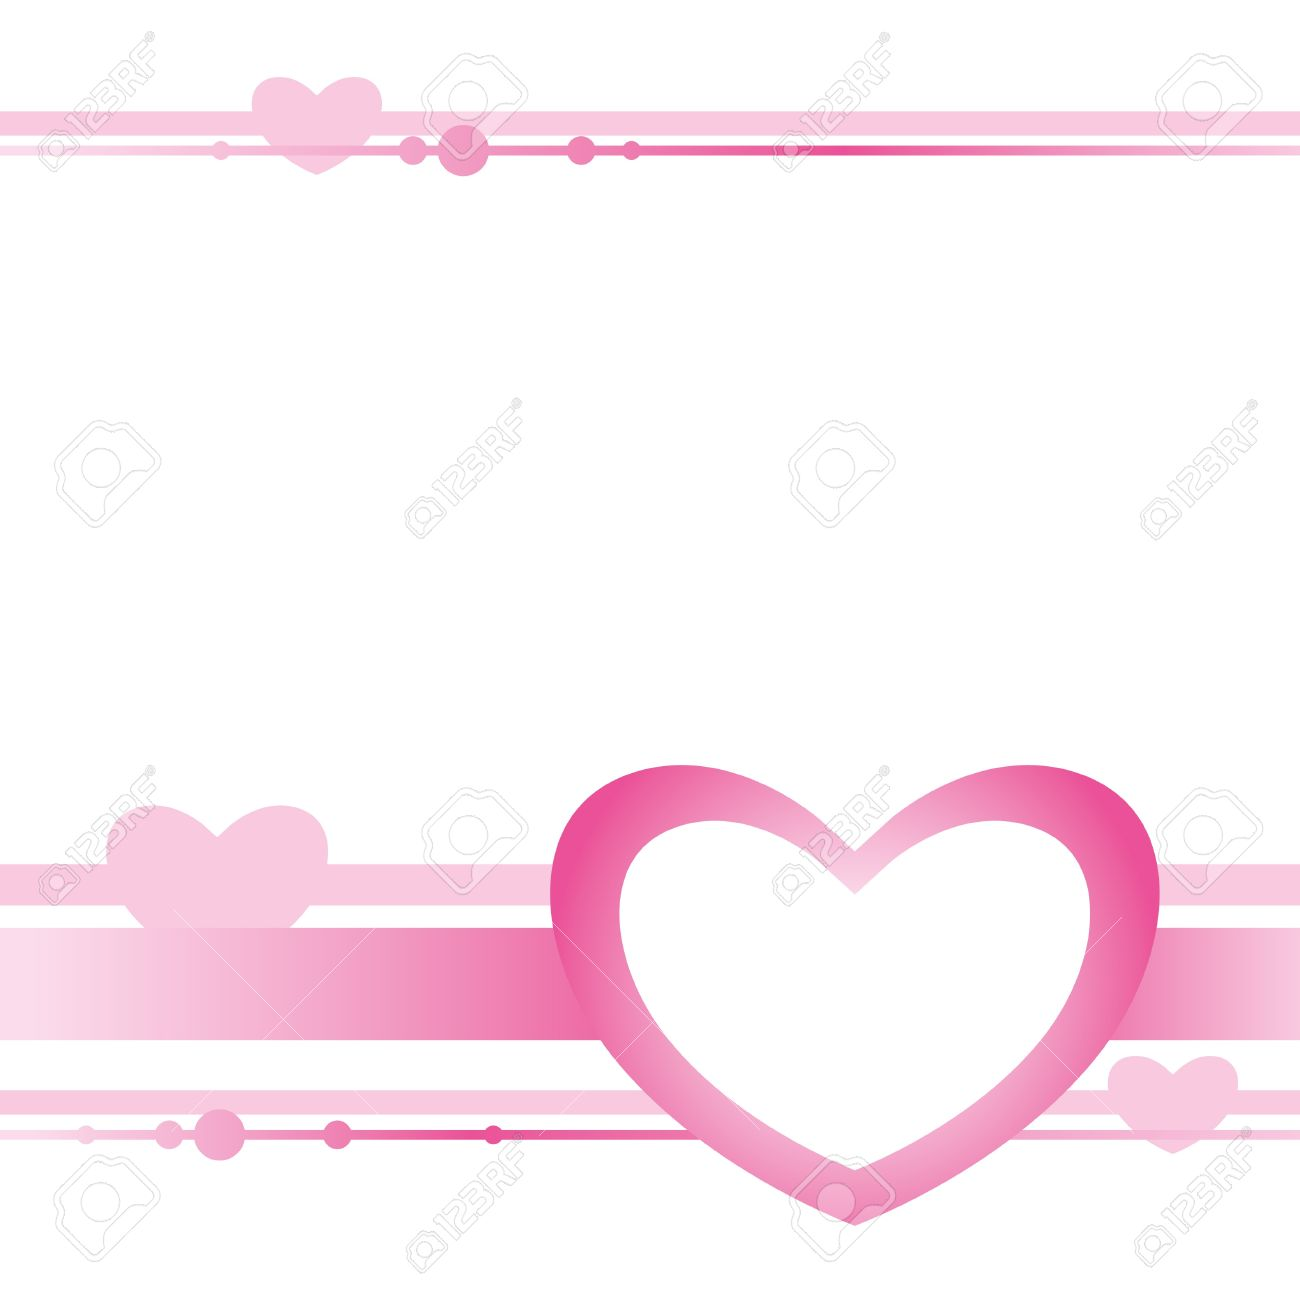 Cute Card With Pink Heart On White Background Royalty Free Cliparts